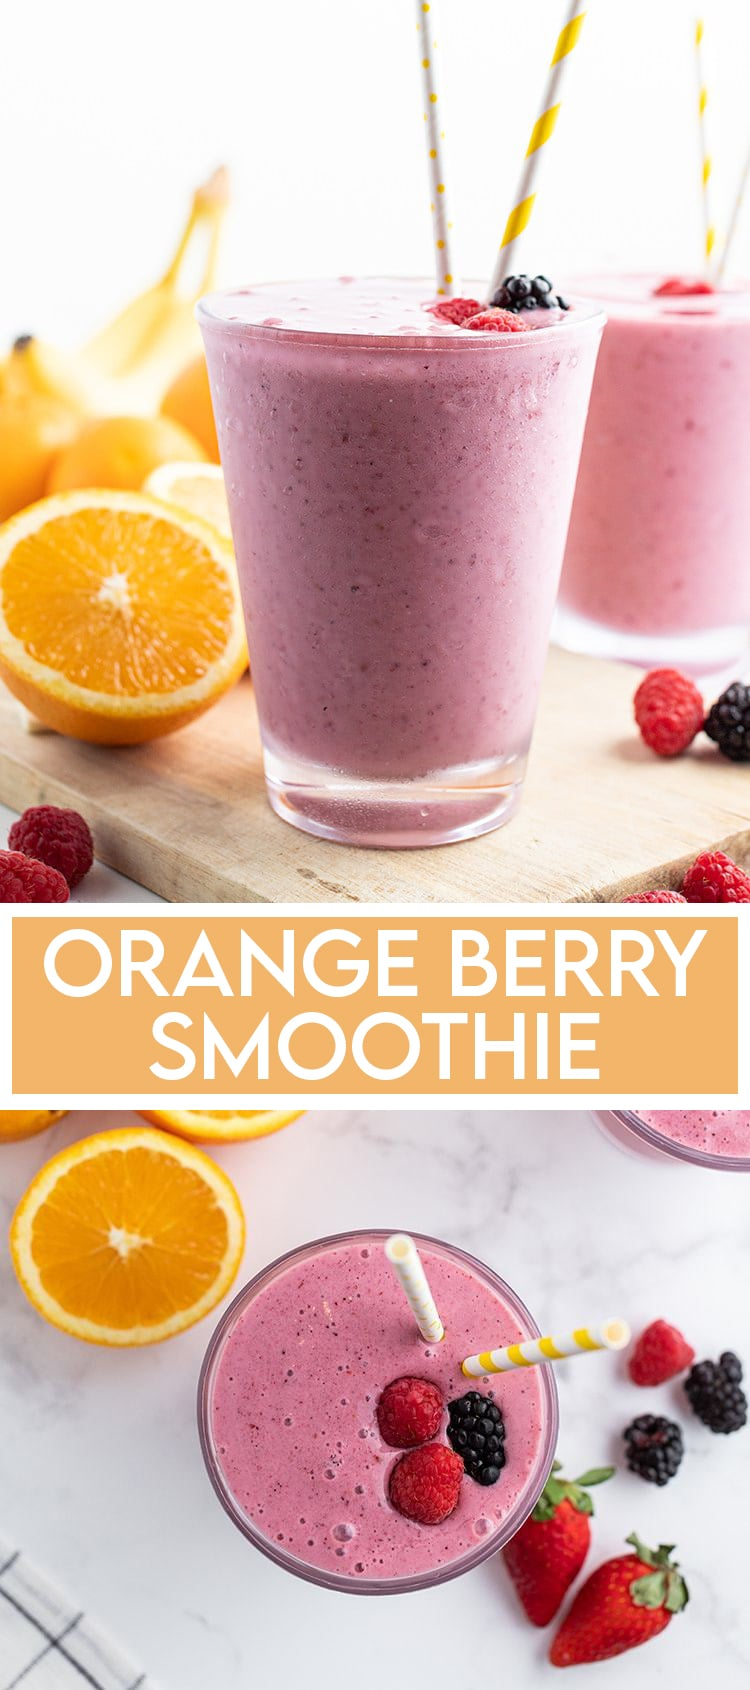 """A side shot of a glass filled to the brim with a purple-ish berry smoothie. It has two paper straws in the glass, there is a text overlay at the bottom that says """"Orange Berry Smoothie"""". Underneath that there is an overhead shot of the same smoothie glass, with three berries on top of the smoothie."""